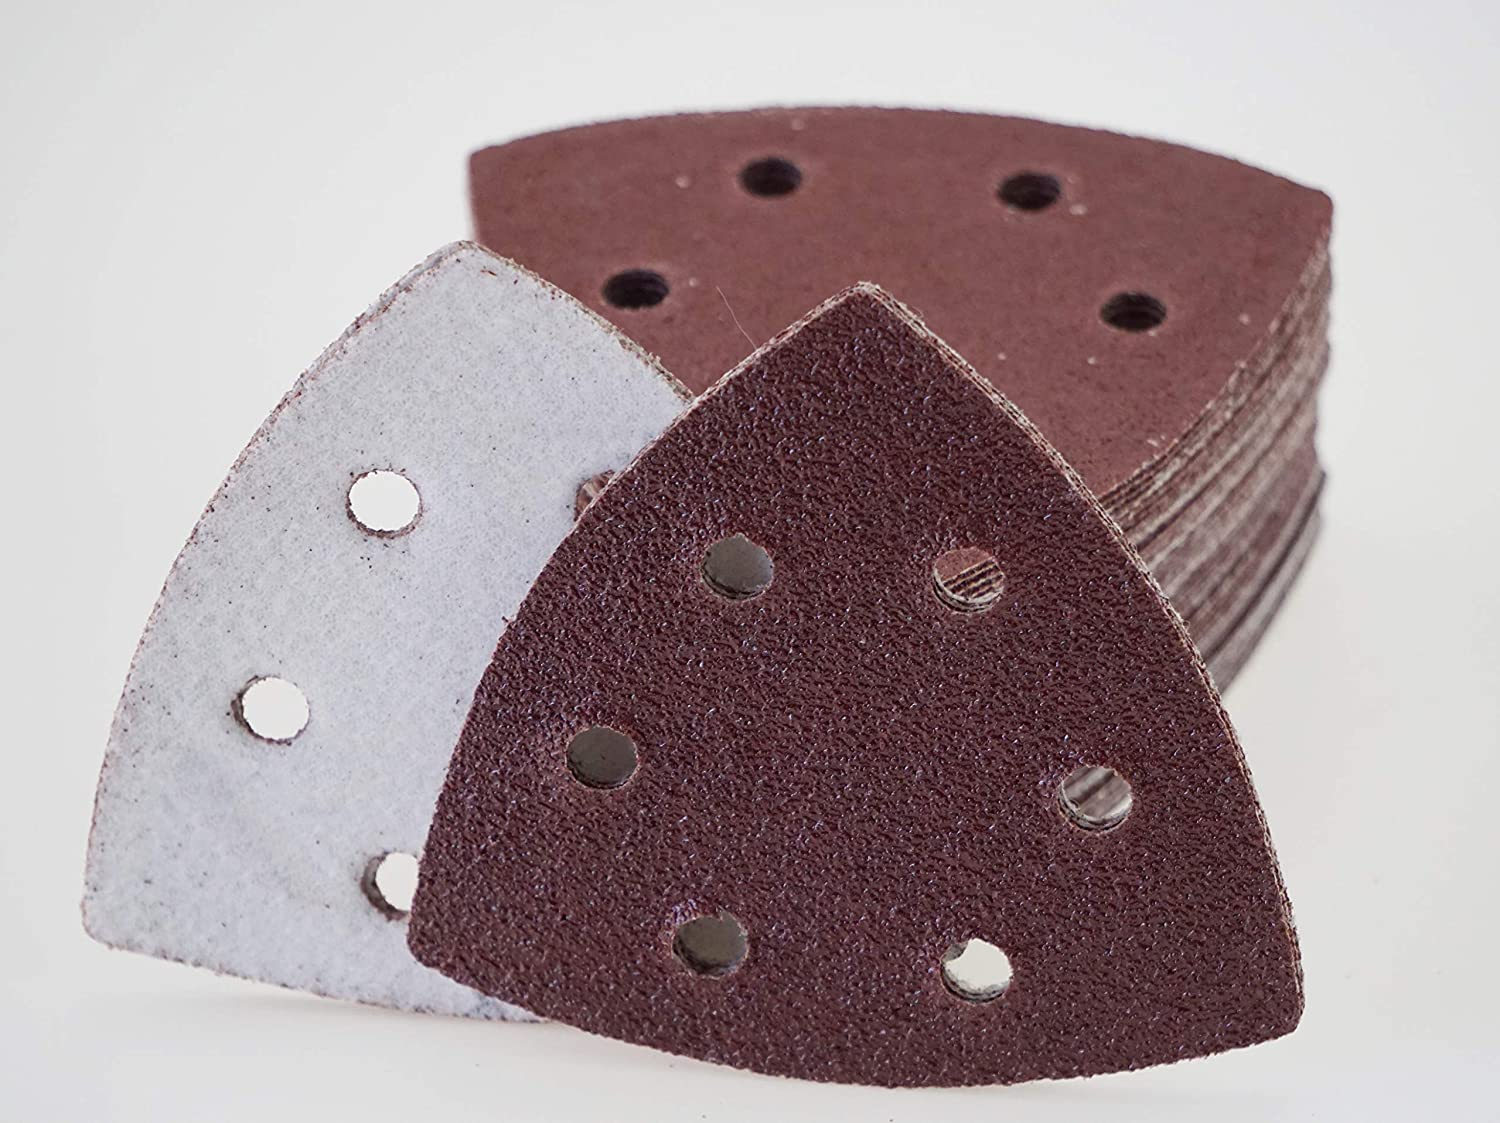 180-Grit 120/ Sheets Velcro Sanding Triangles for Tri-Base Sander 93/ x 93/ x 93/ mm 6/ Holes Grit 20/ Each of 40//60/ Grain 120-Grit 80-Grit 240/ Grain//Delta Sander//sanding Disks 93//Sandpaper